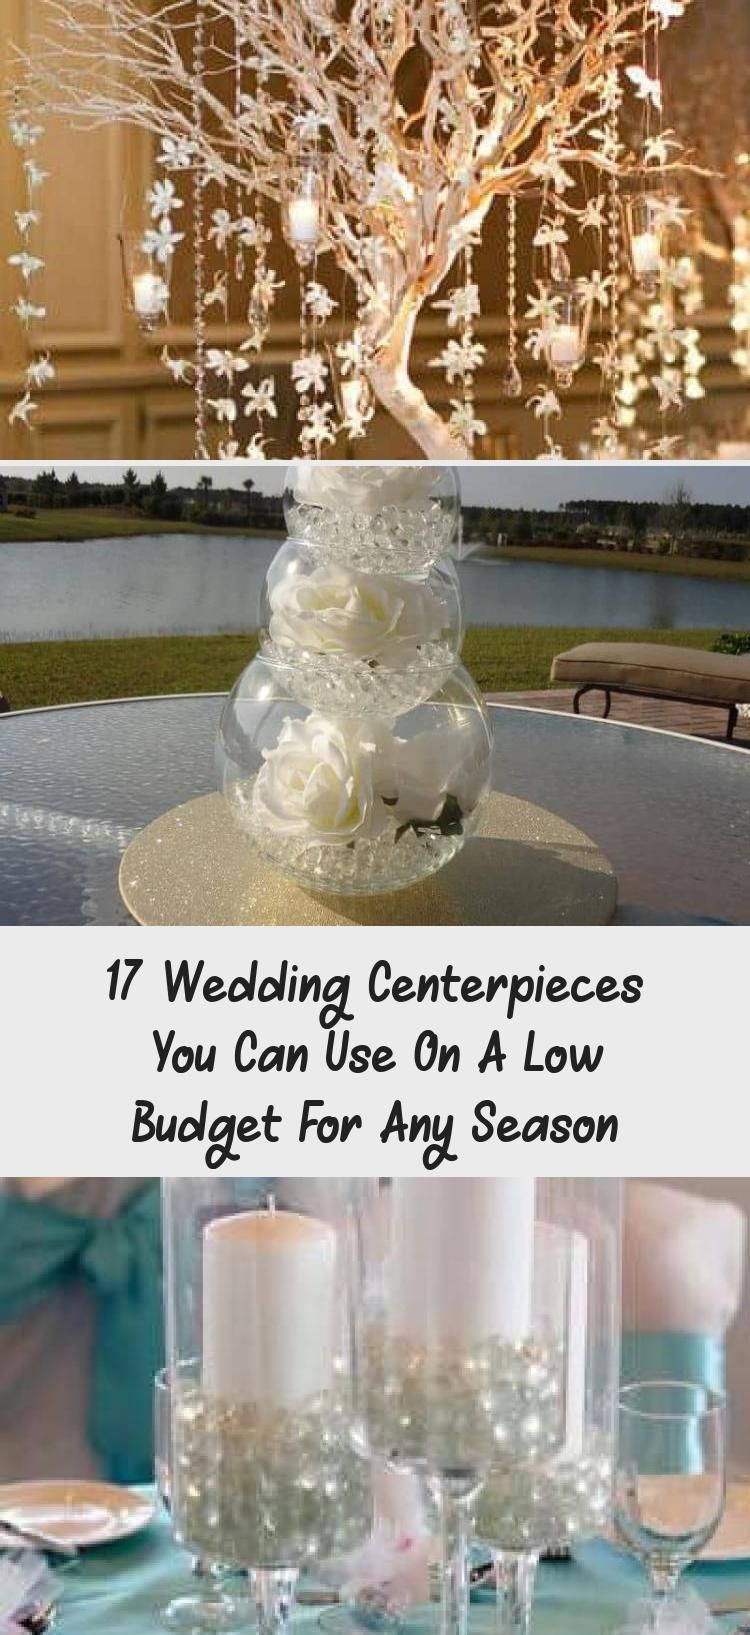 My Blog in 2020 Classic wedding decorations, Spring